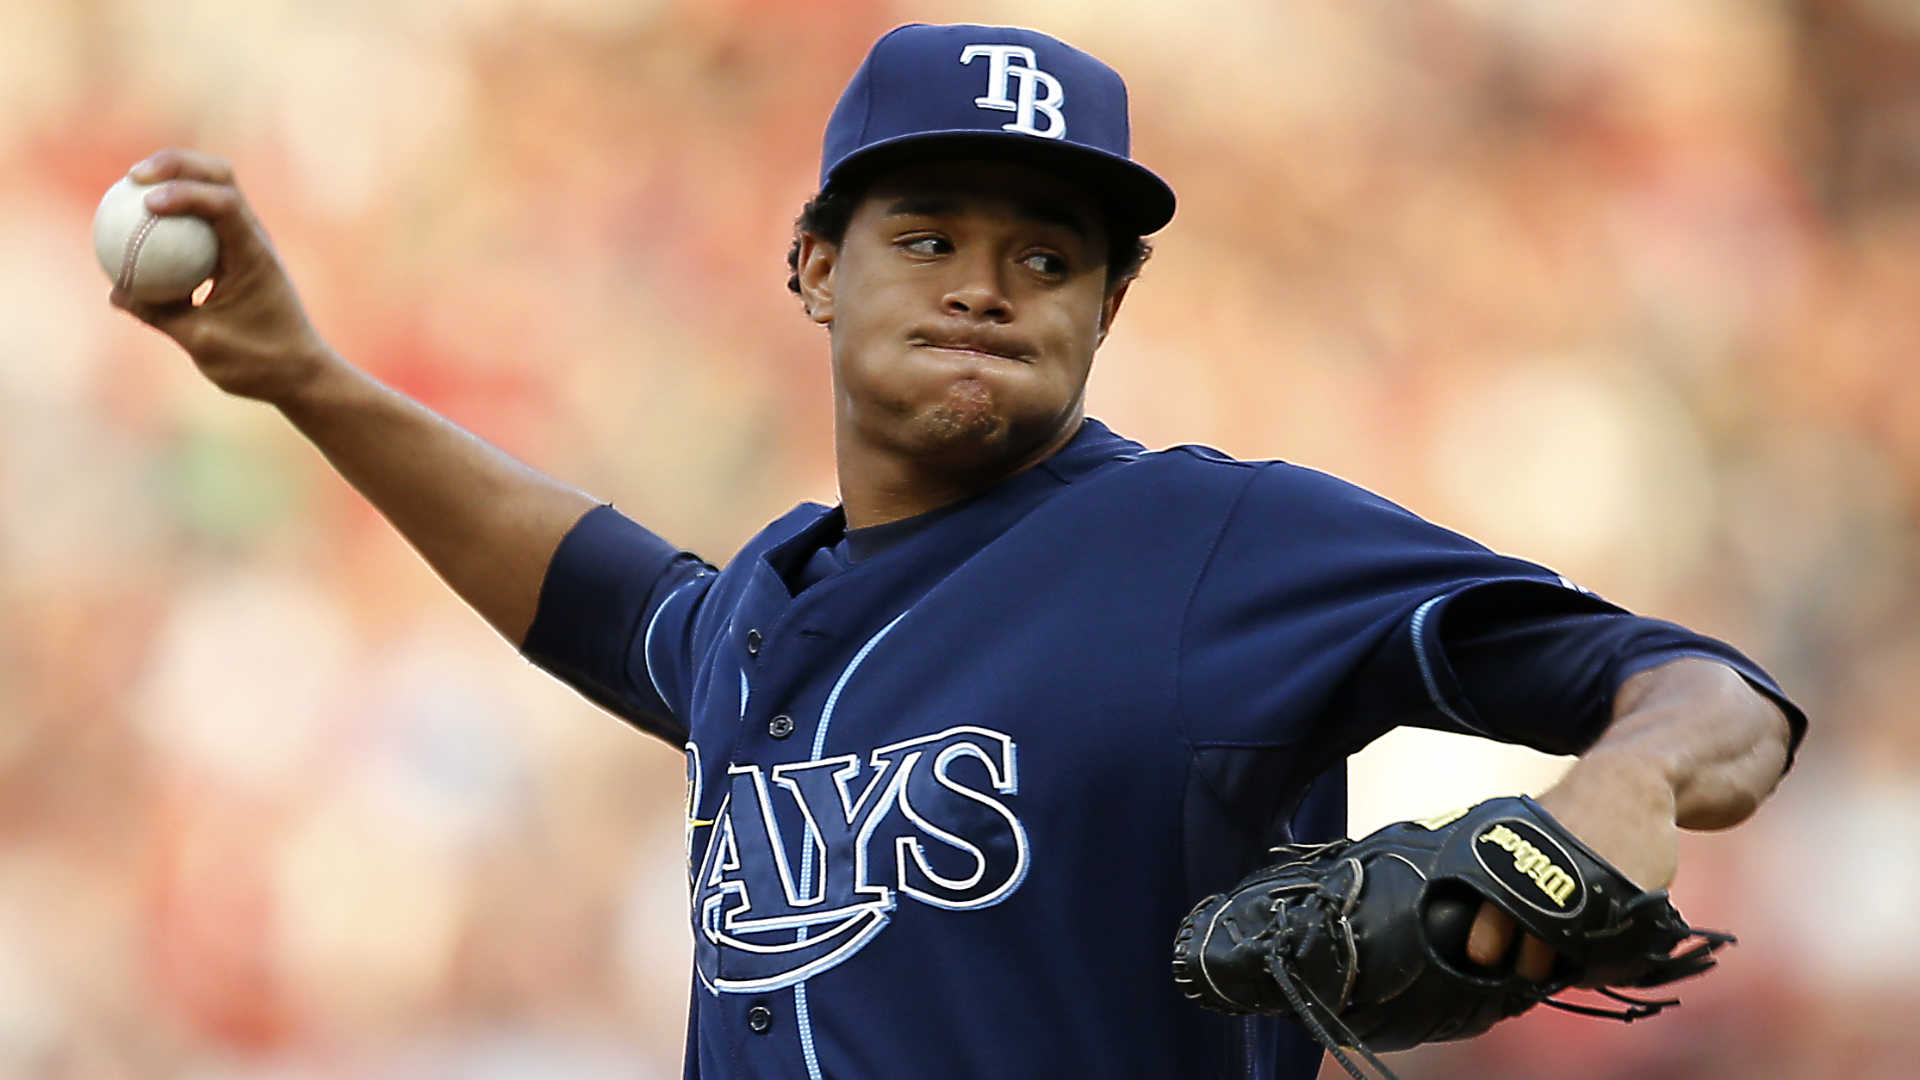 Tampa Bay Rays 2014 fantasy baseball team preview